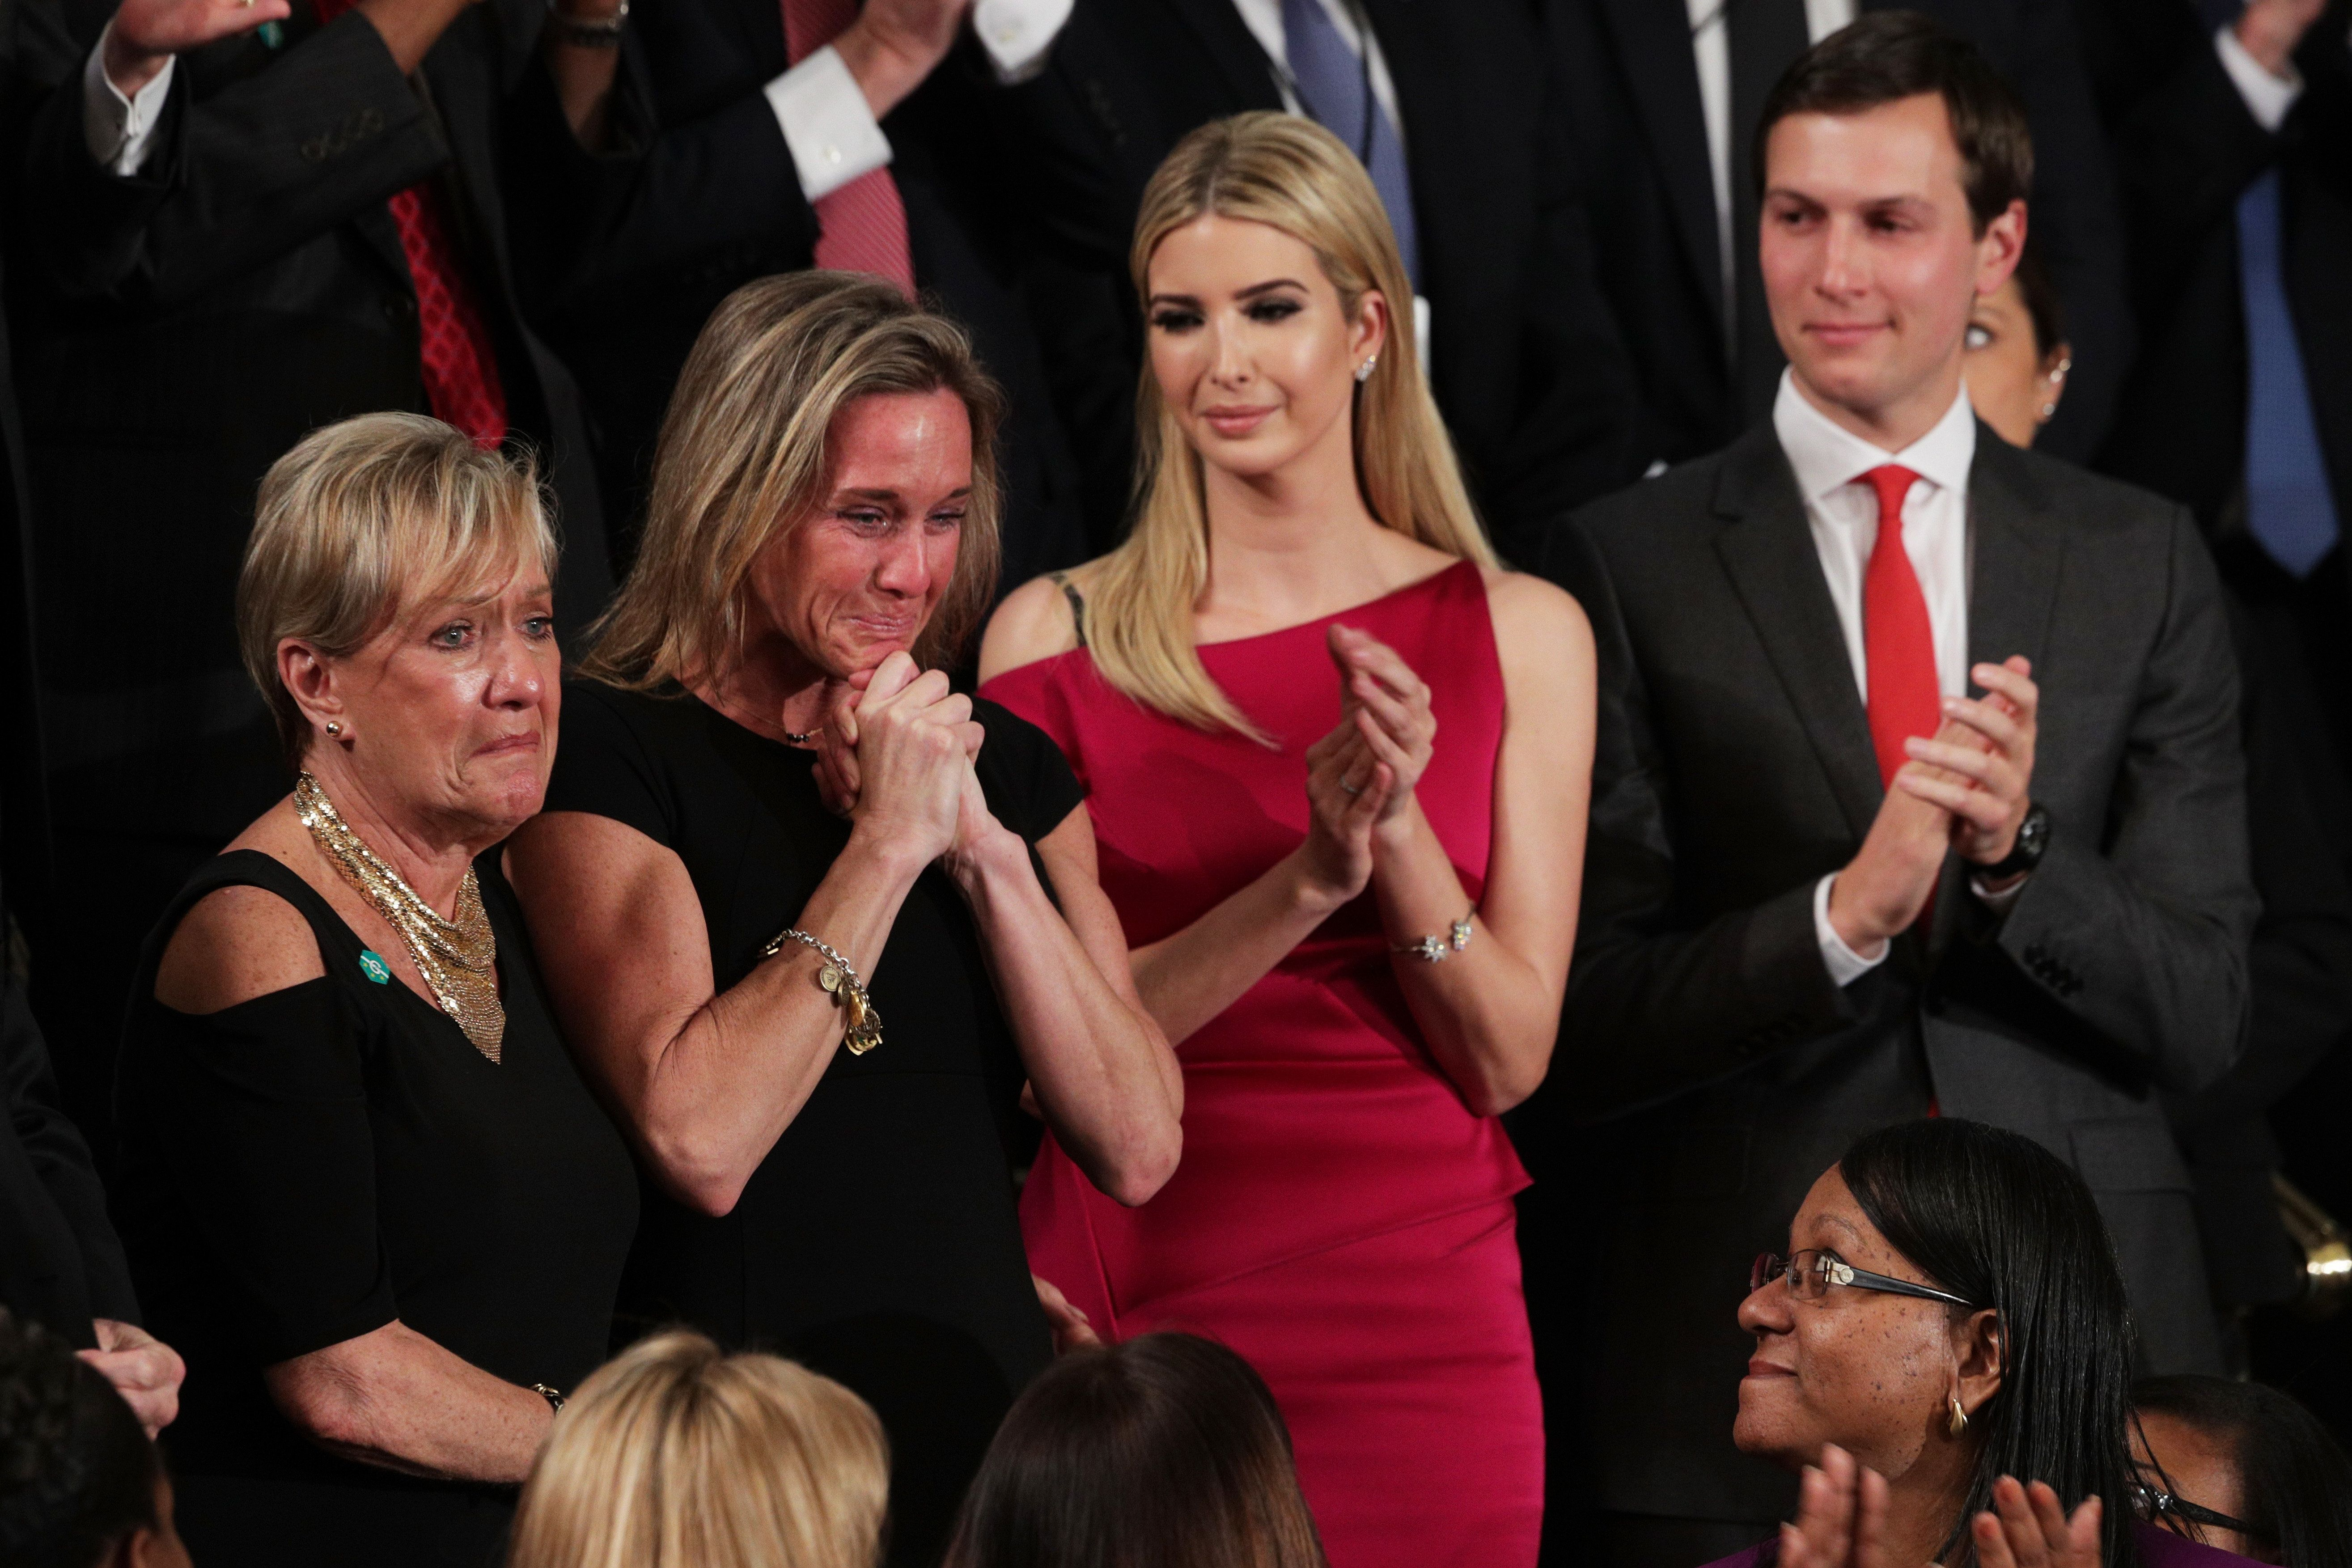 Carryn Owens receives a standing ovation in tribute to her late husband during Trump's speech.